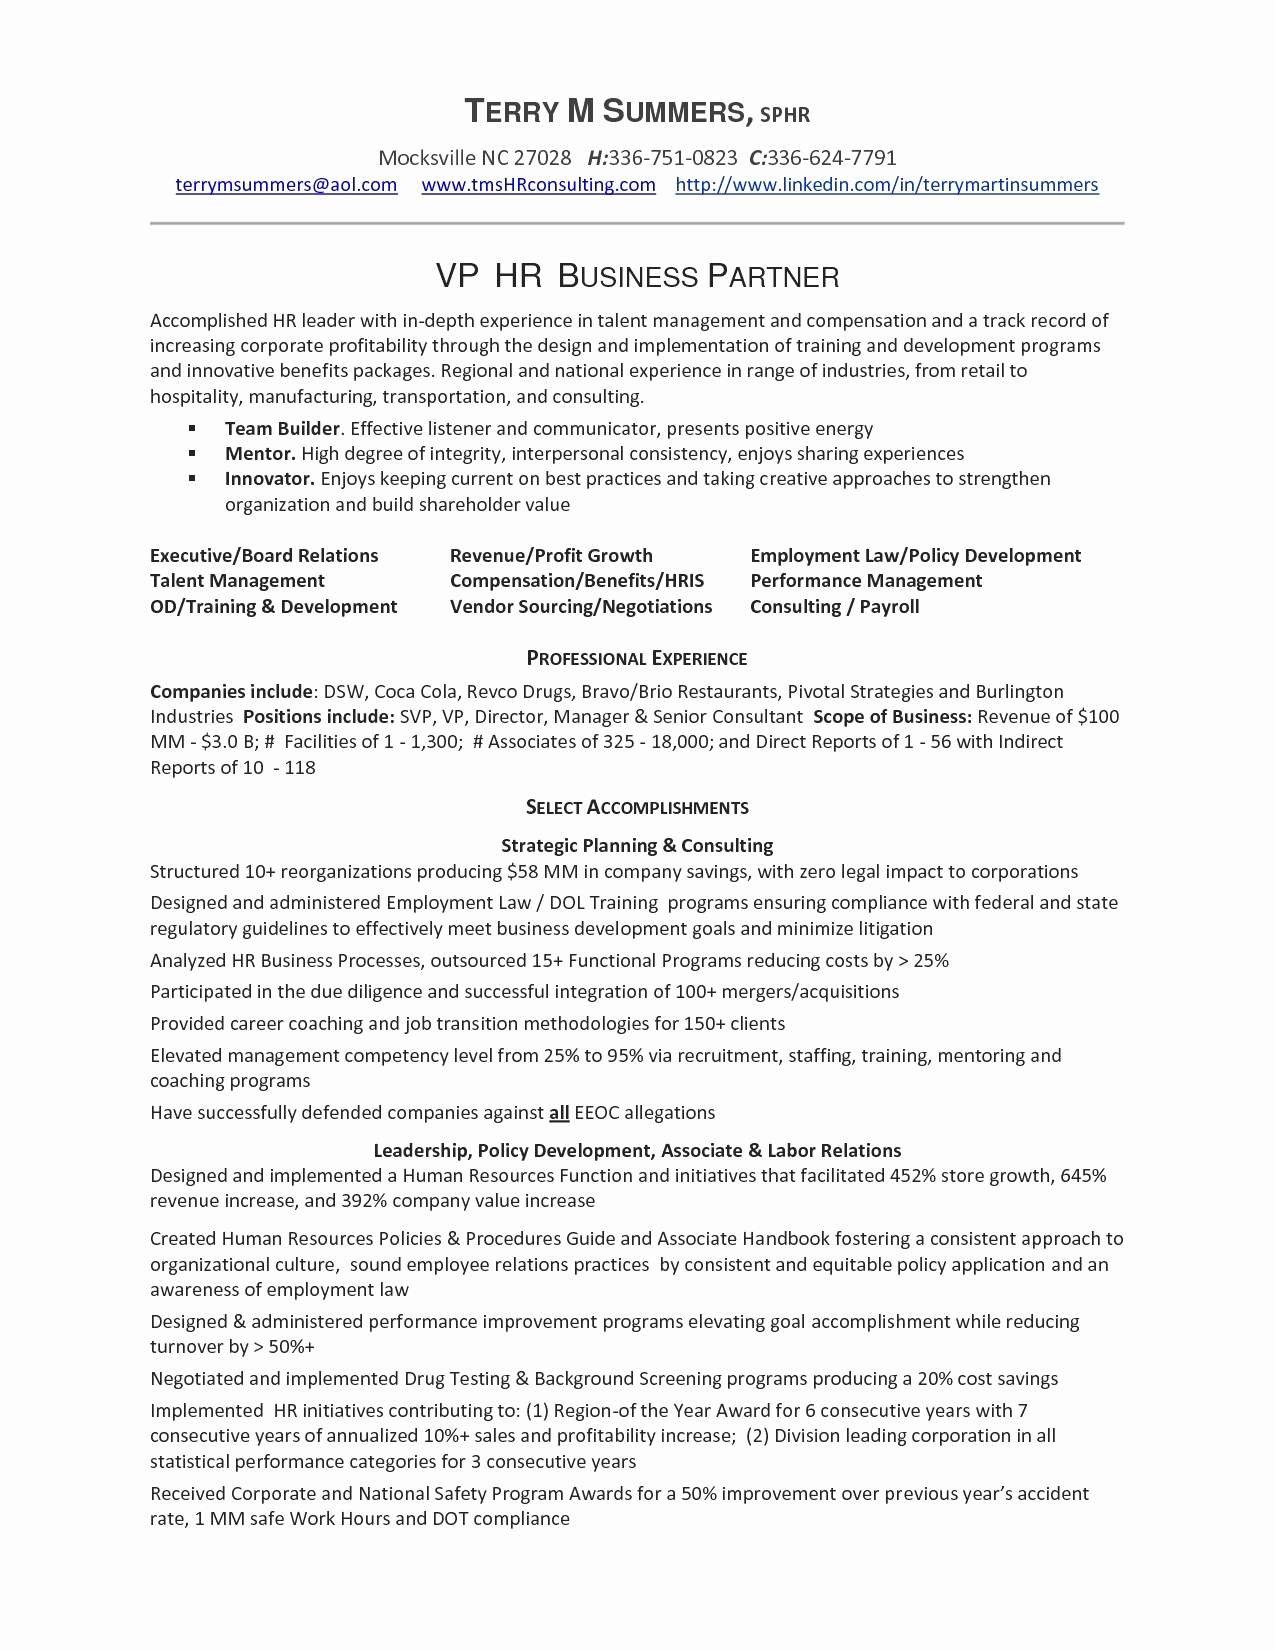 Small Business Owner Resume - Small Business Owner Resume Luxury Small Business Owner Resume